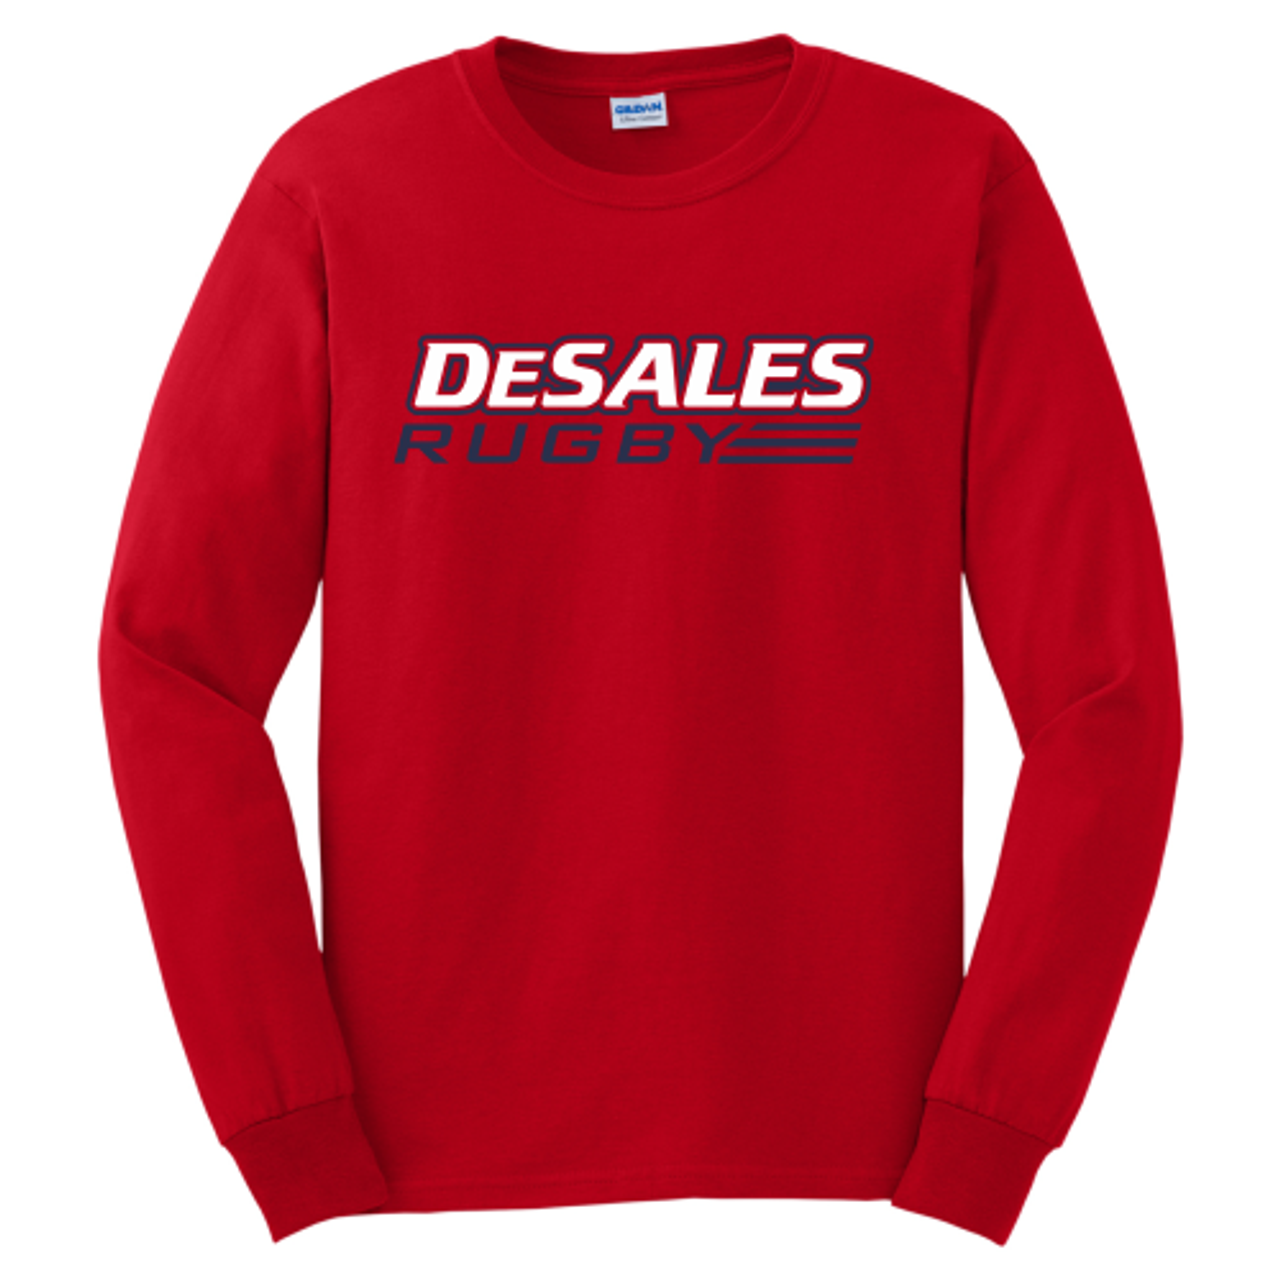 DeSales Rugby Tee, Red